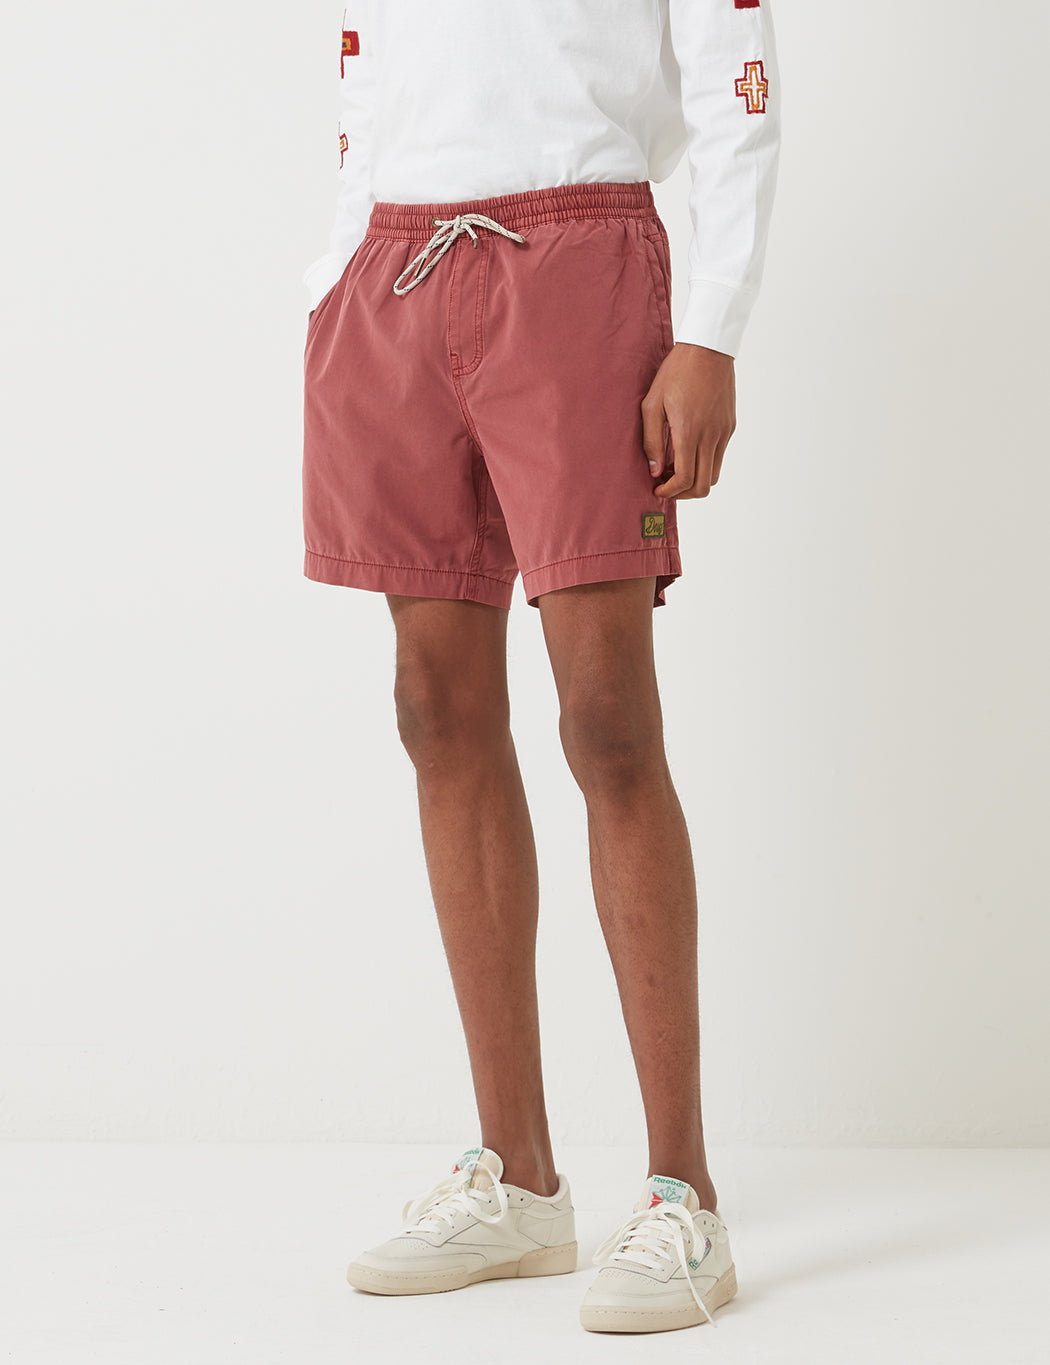 Deus Ex Machina Sandbar Solid Garment Dye Shorts - Red | URBAN EXCESS.